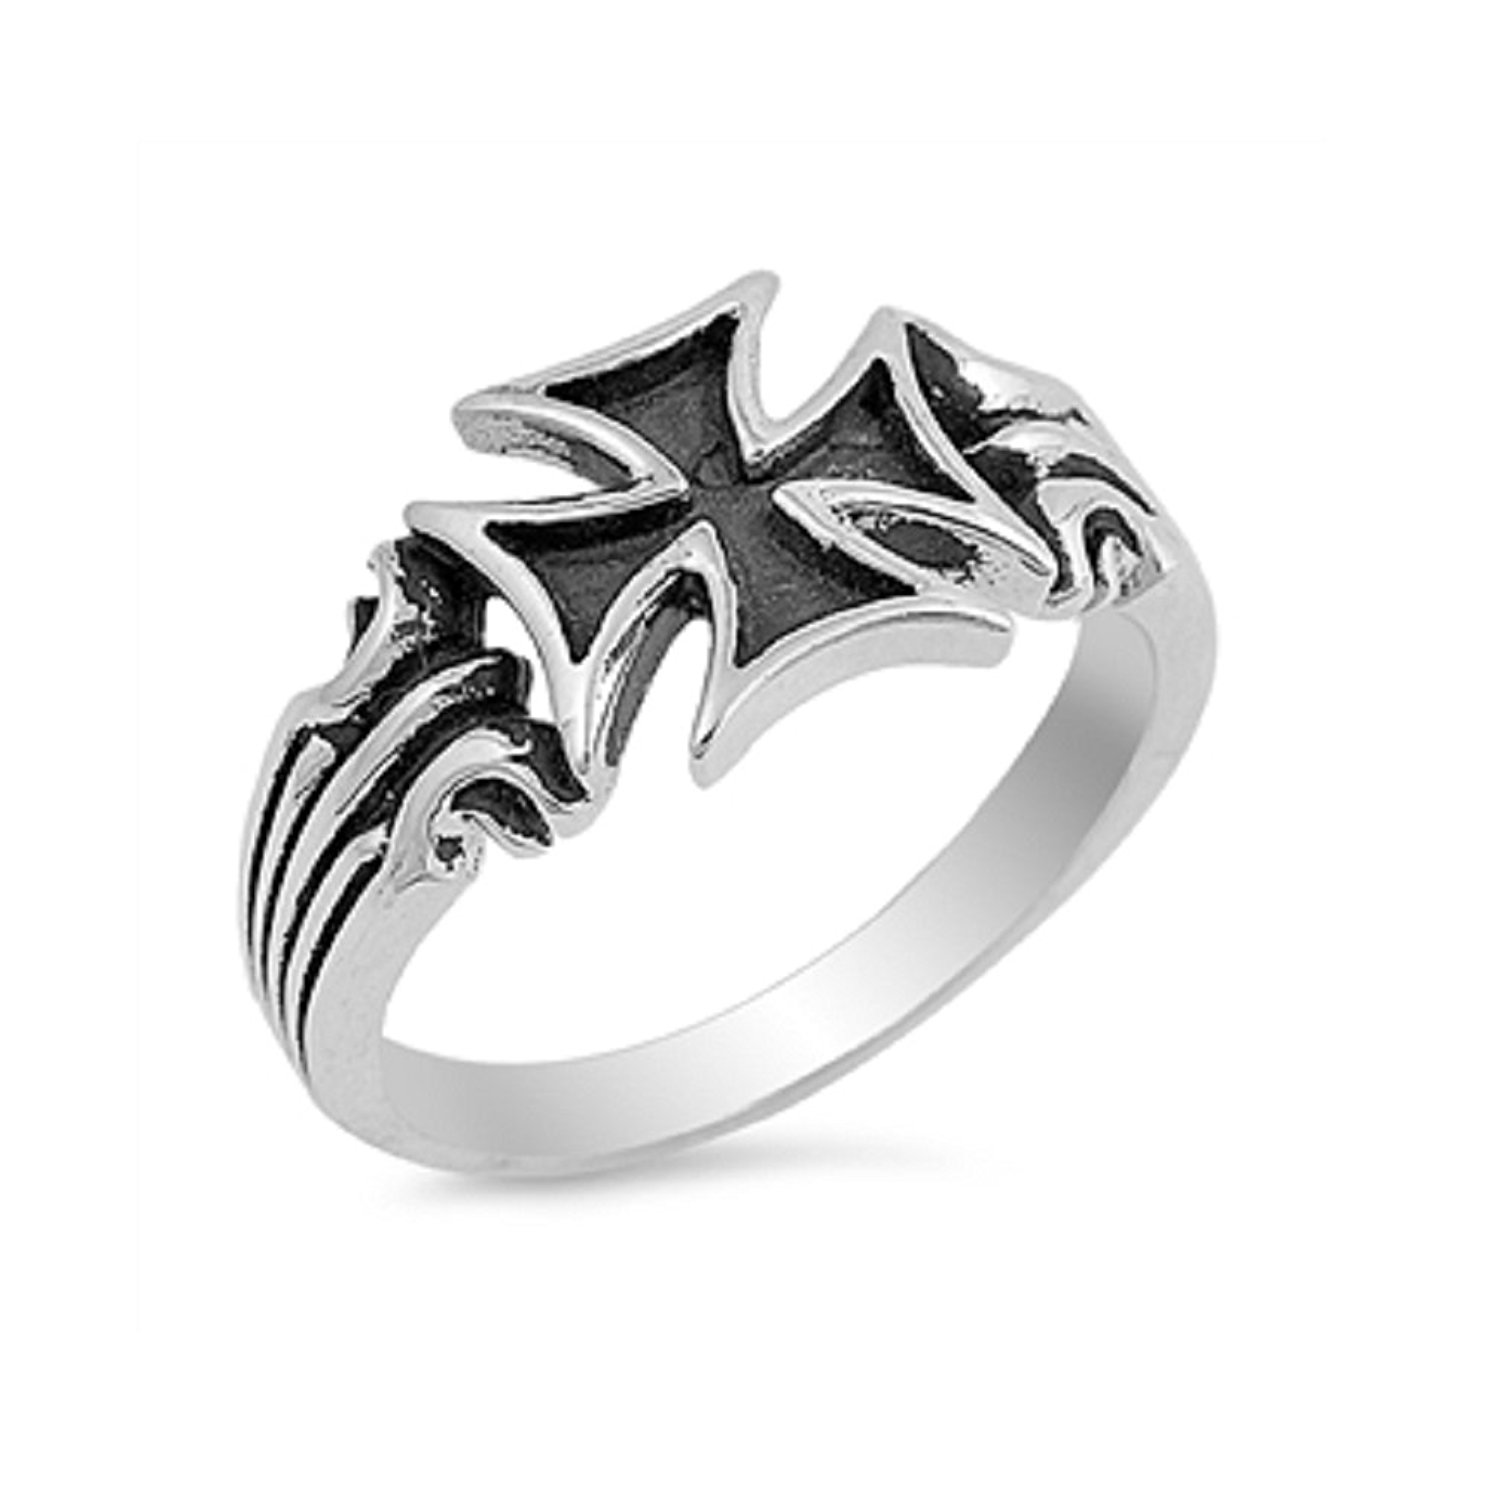 CloseoutWarehouse Oxidized Sterling Silver Jesus Ring